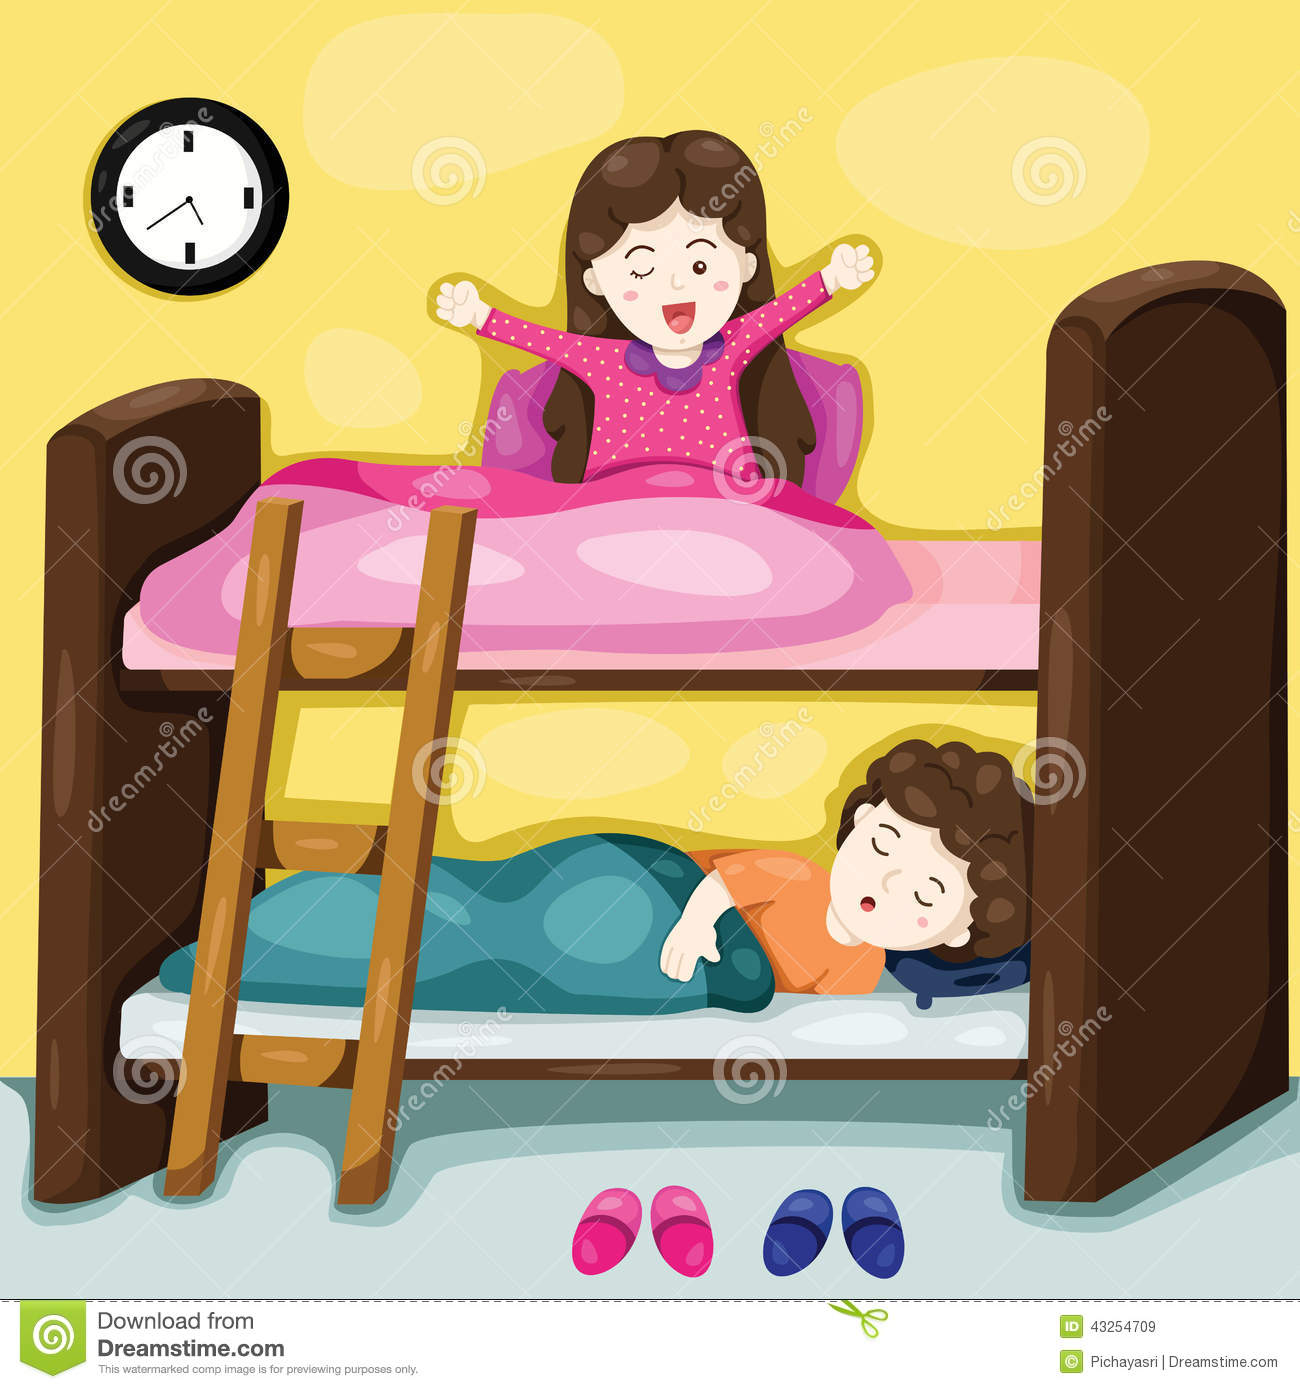 Little Kids On Bunk Bed Stock Vector Illustration Of Decorative 43254709